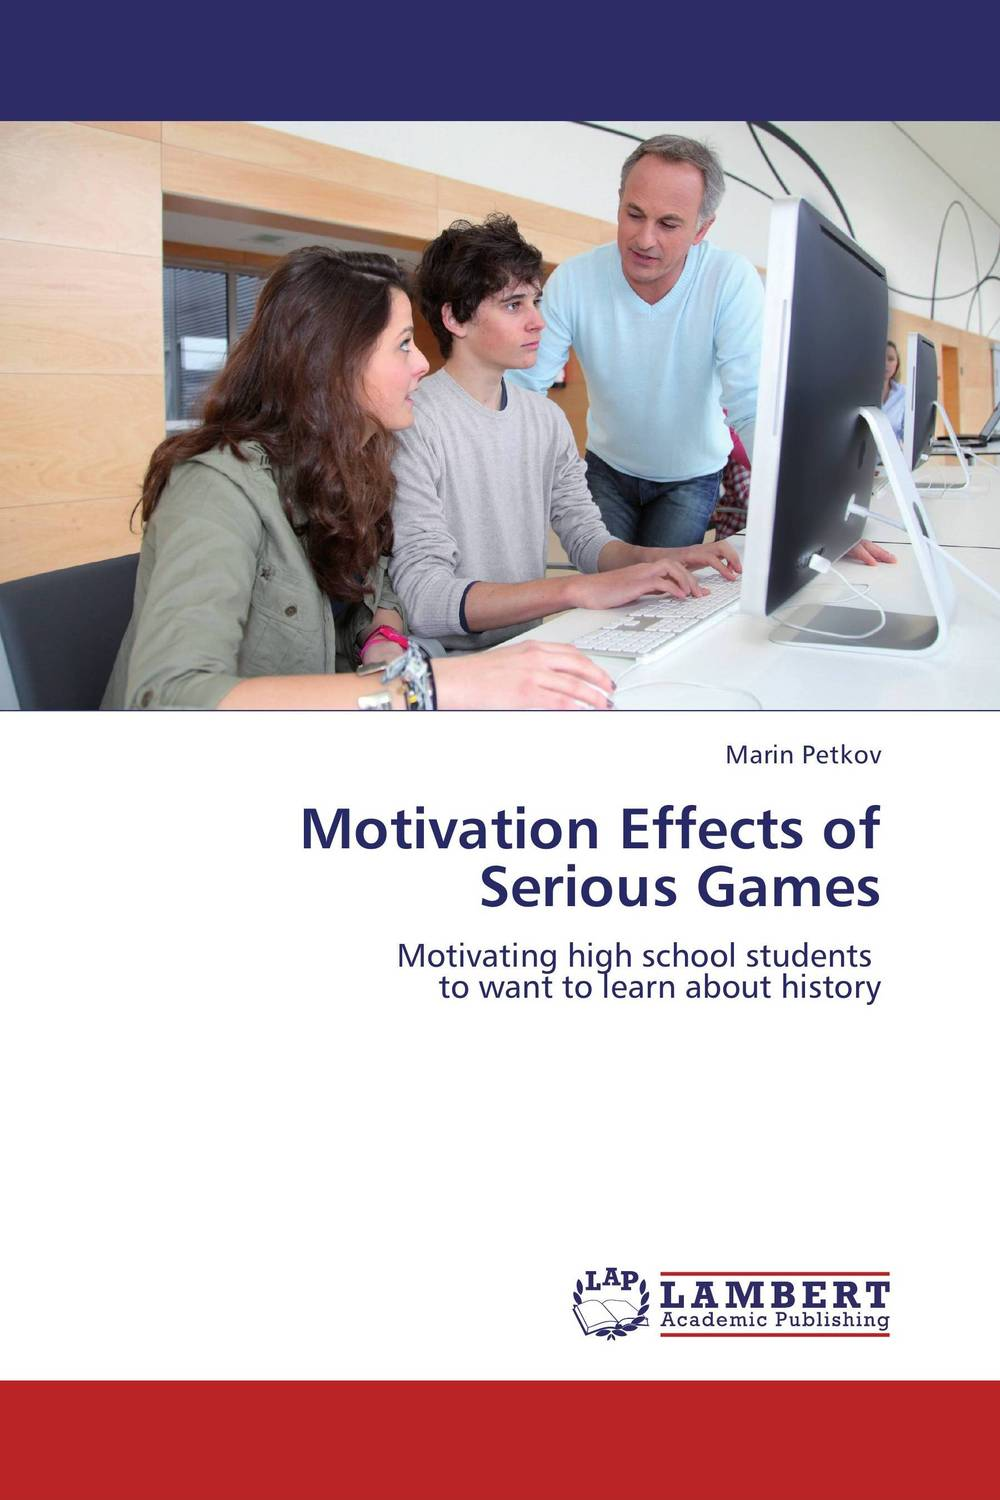 Motivation Effects of  Serious Games mick johnson motivation is at